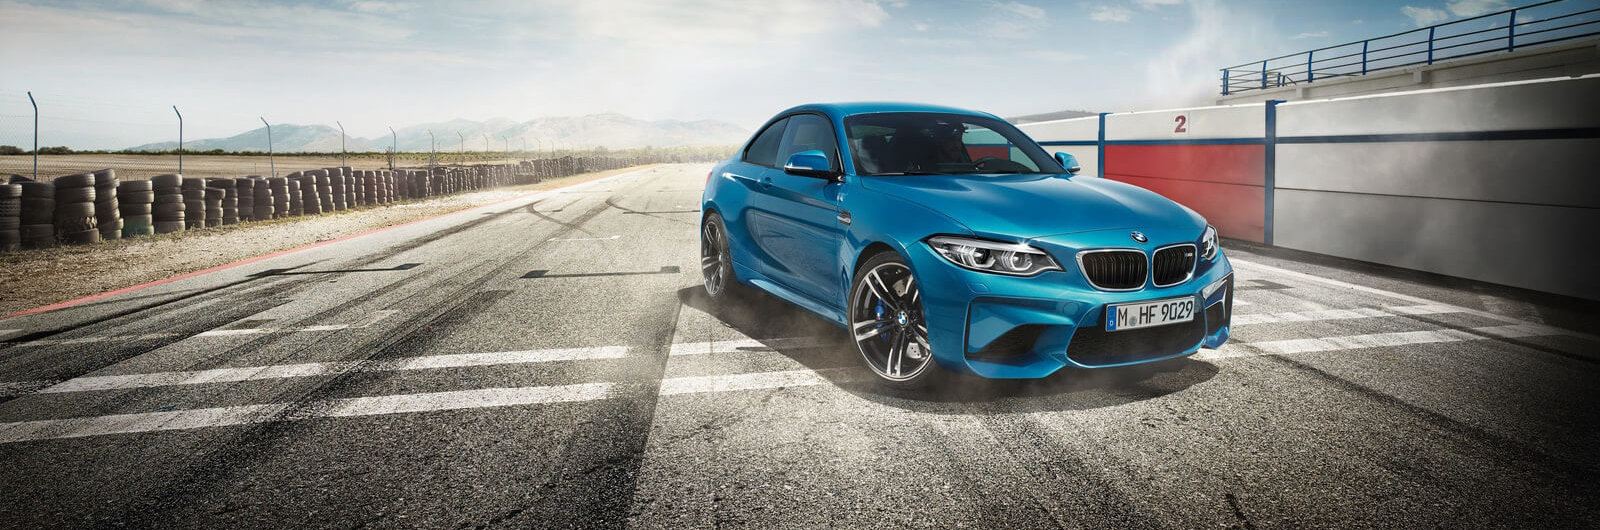 hero bmw M2 coupe mf 01